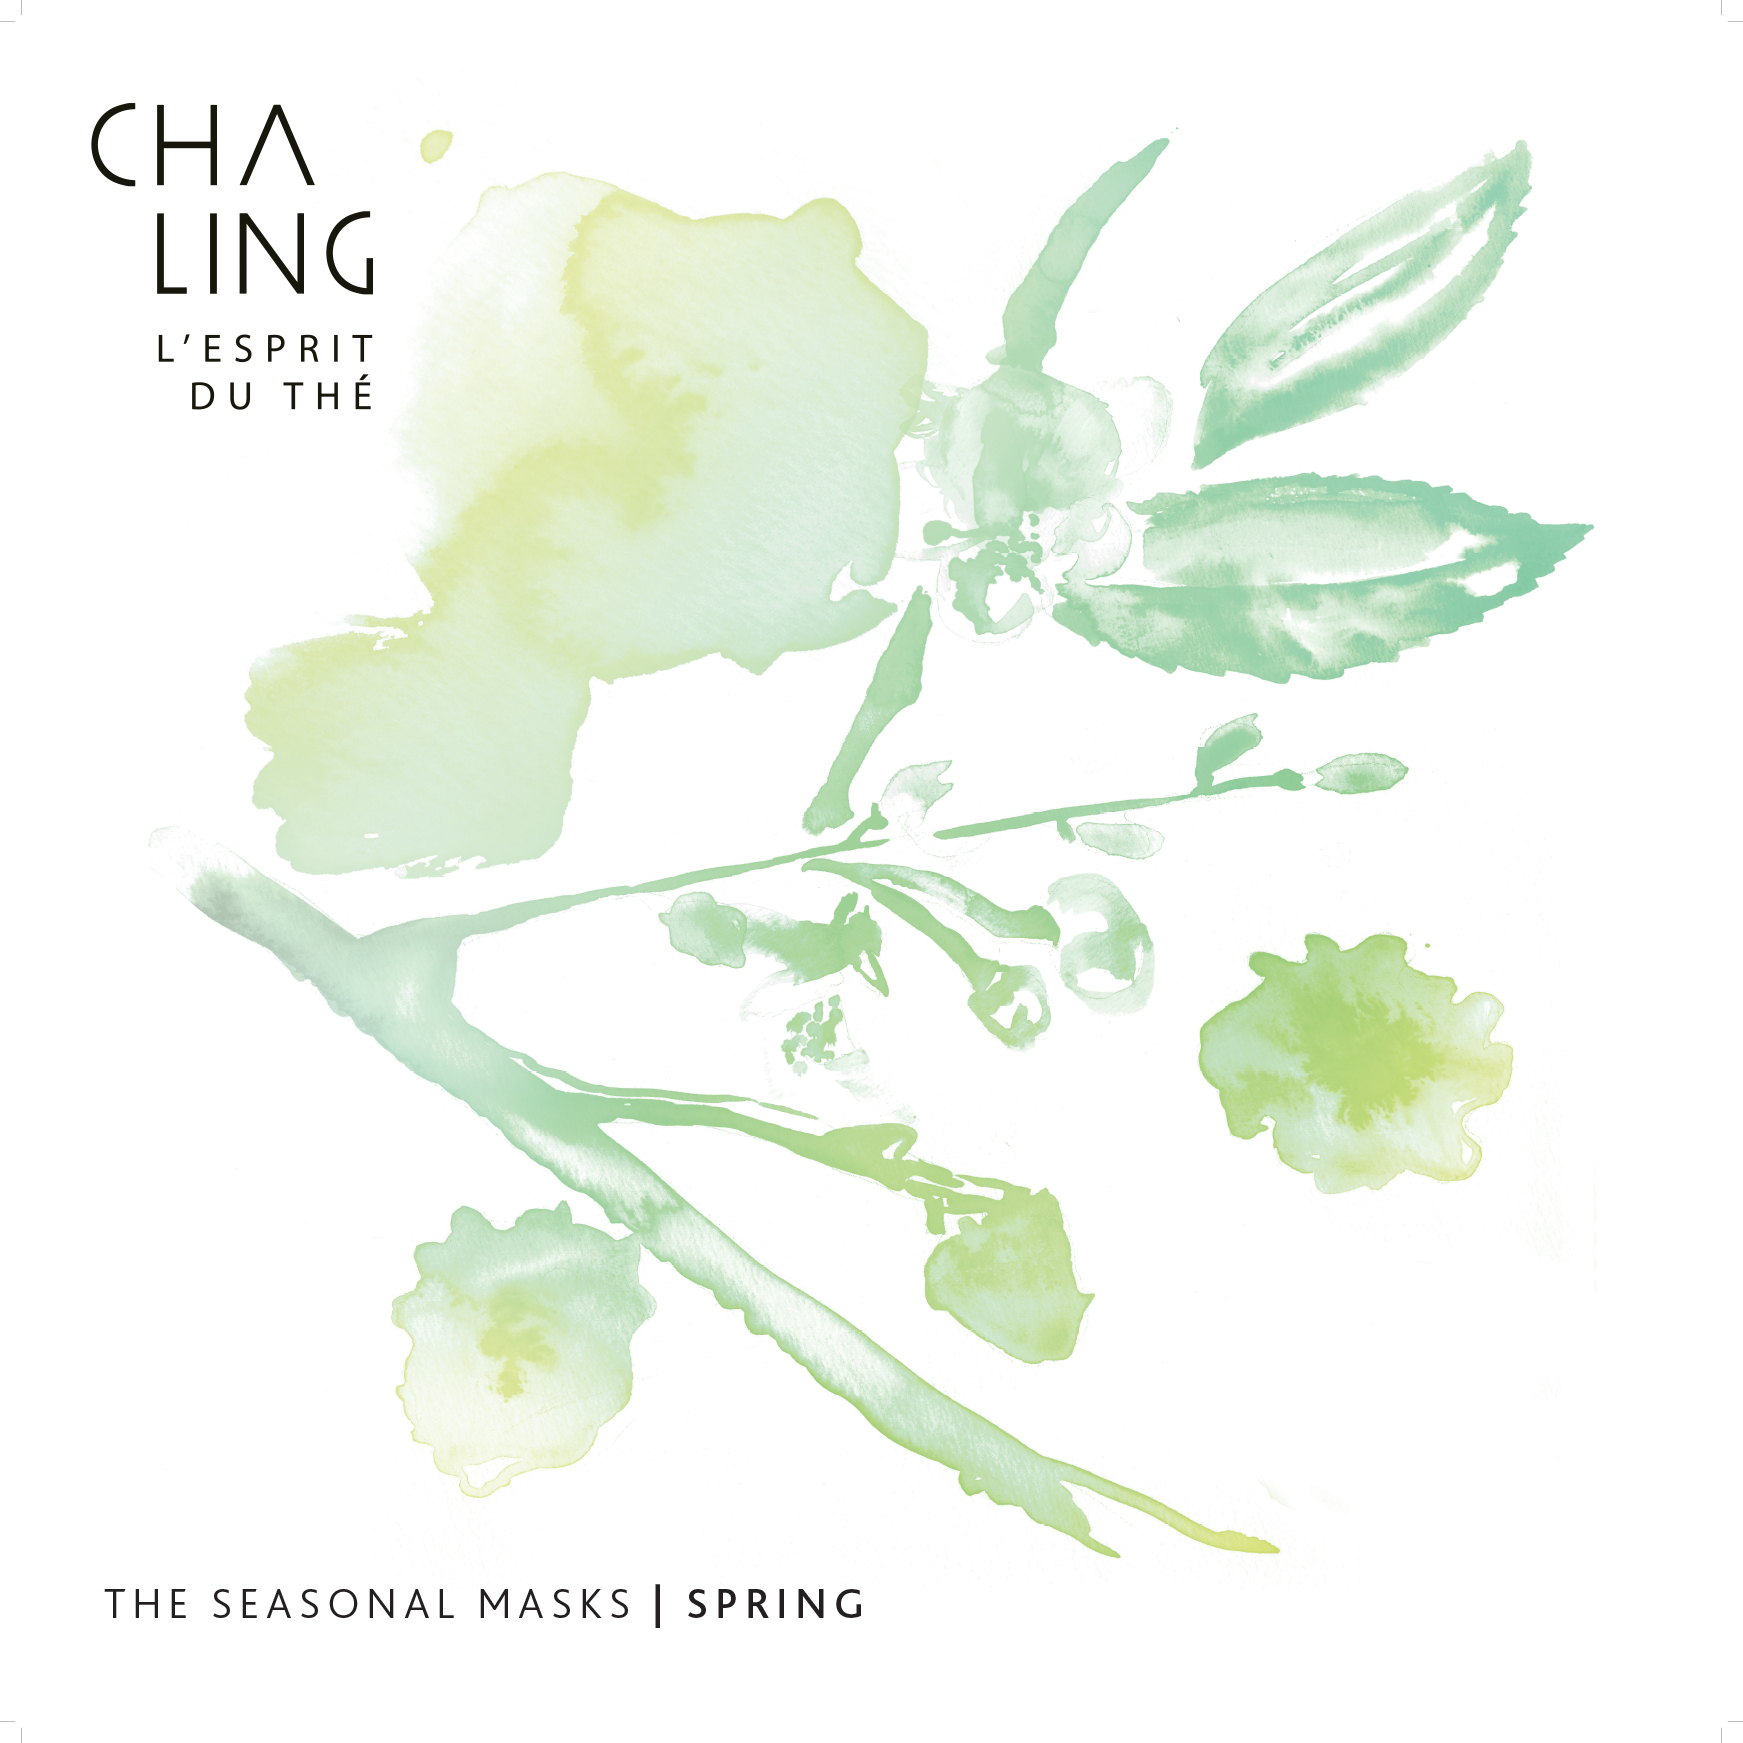 CHA LING SEASONAL MASKS